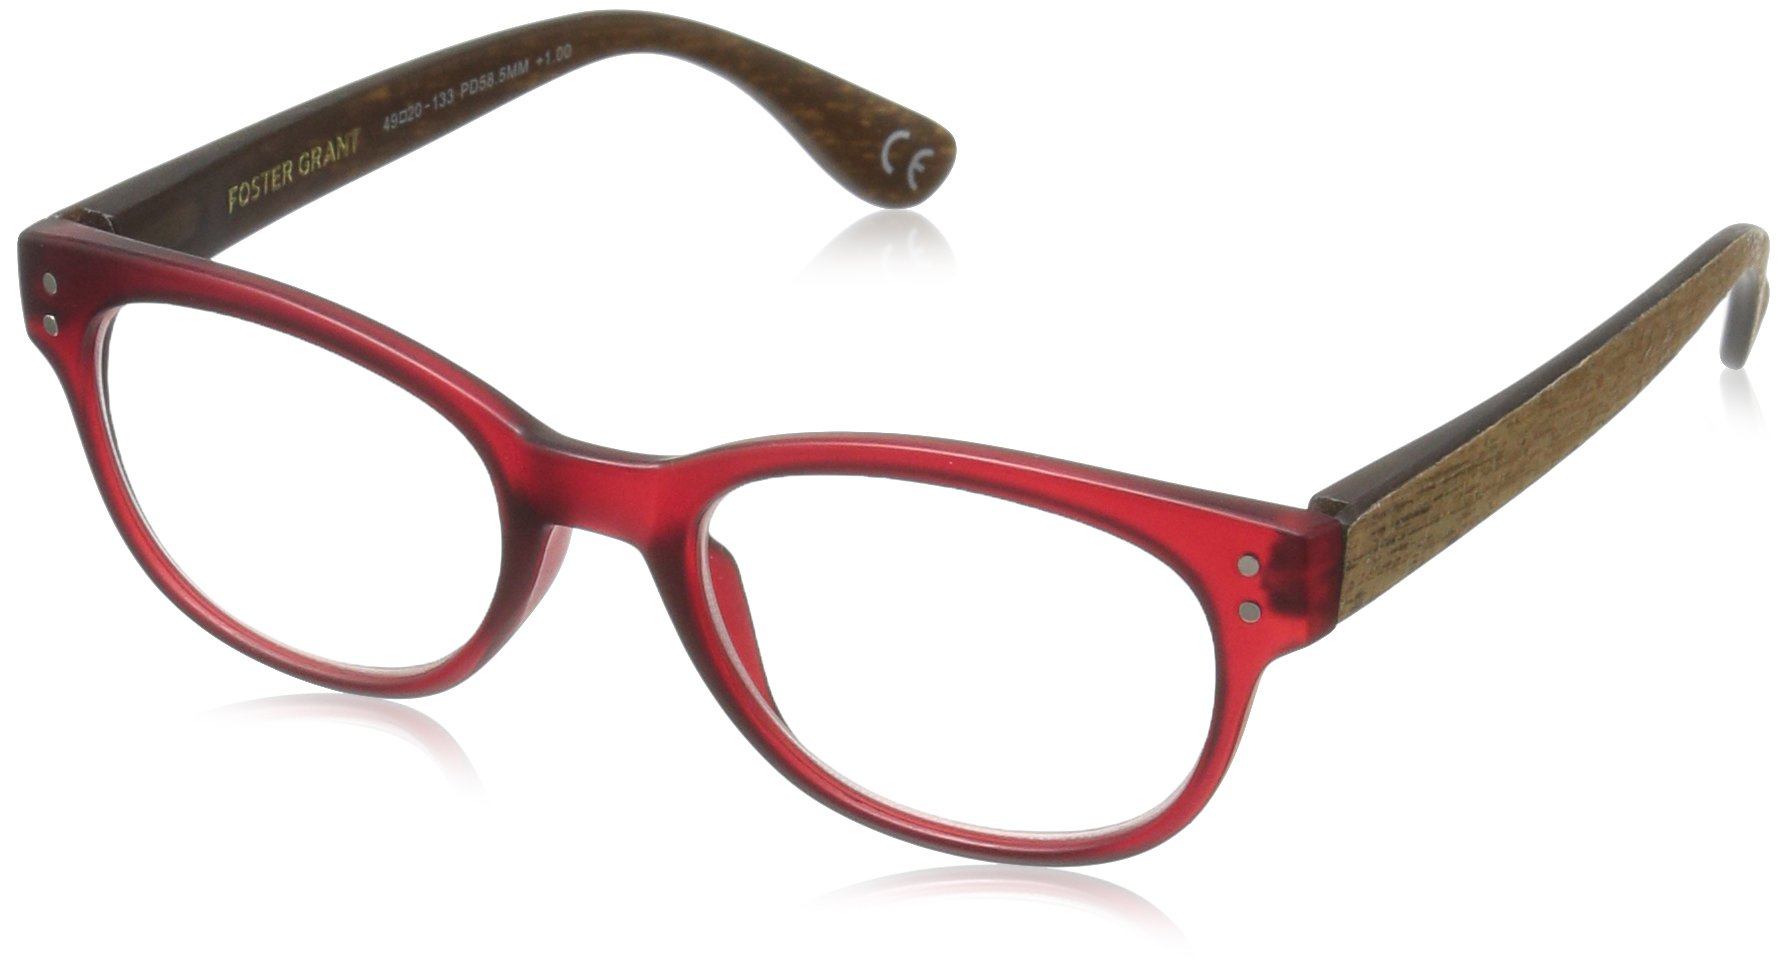 Foster Grant Women's Rosemary 1017556-150.COM Round Reading Glasses, Wine, 1.5